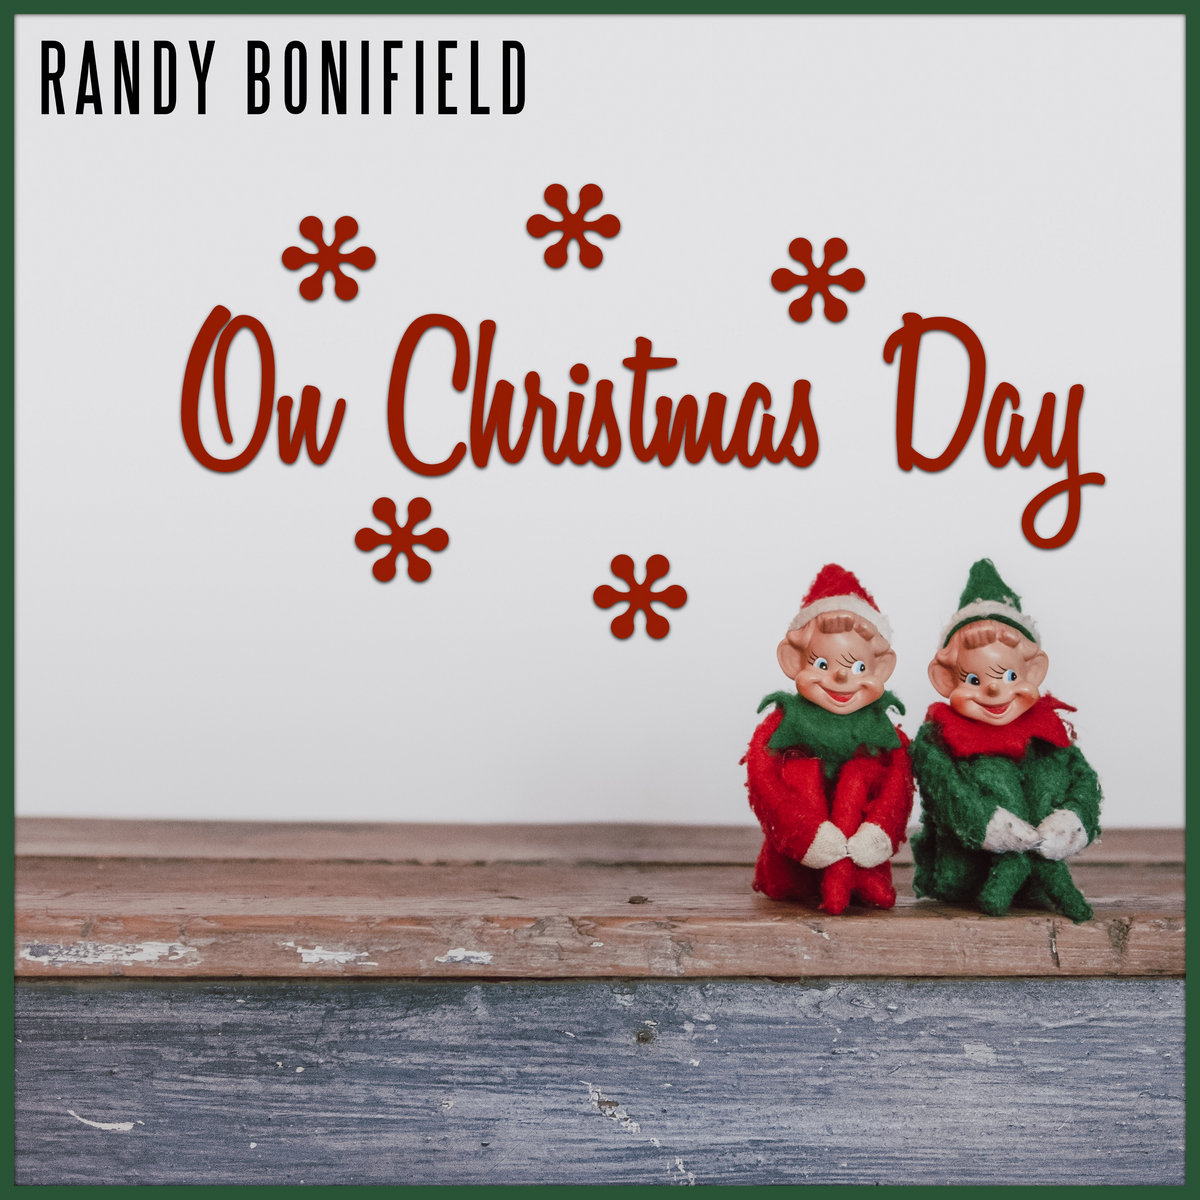 On Christmas Day by Randy Bonifield